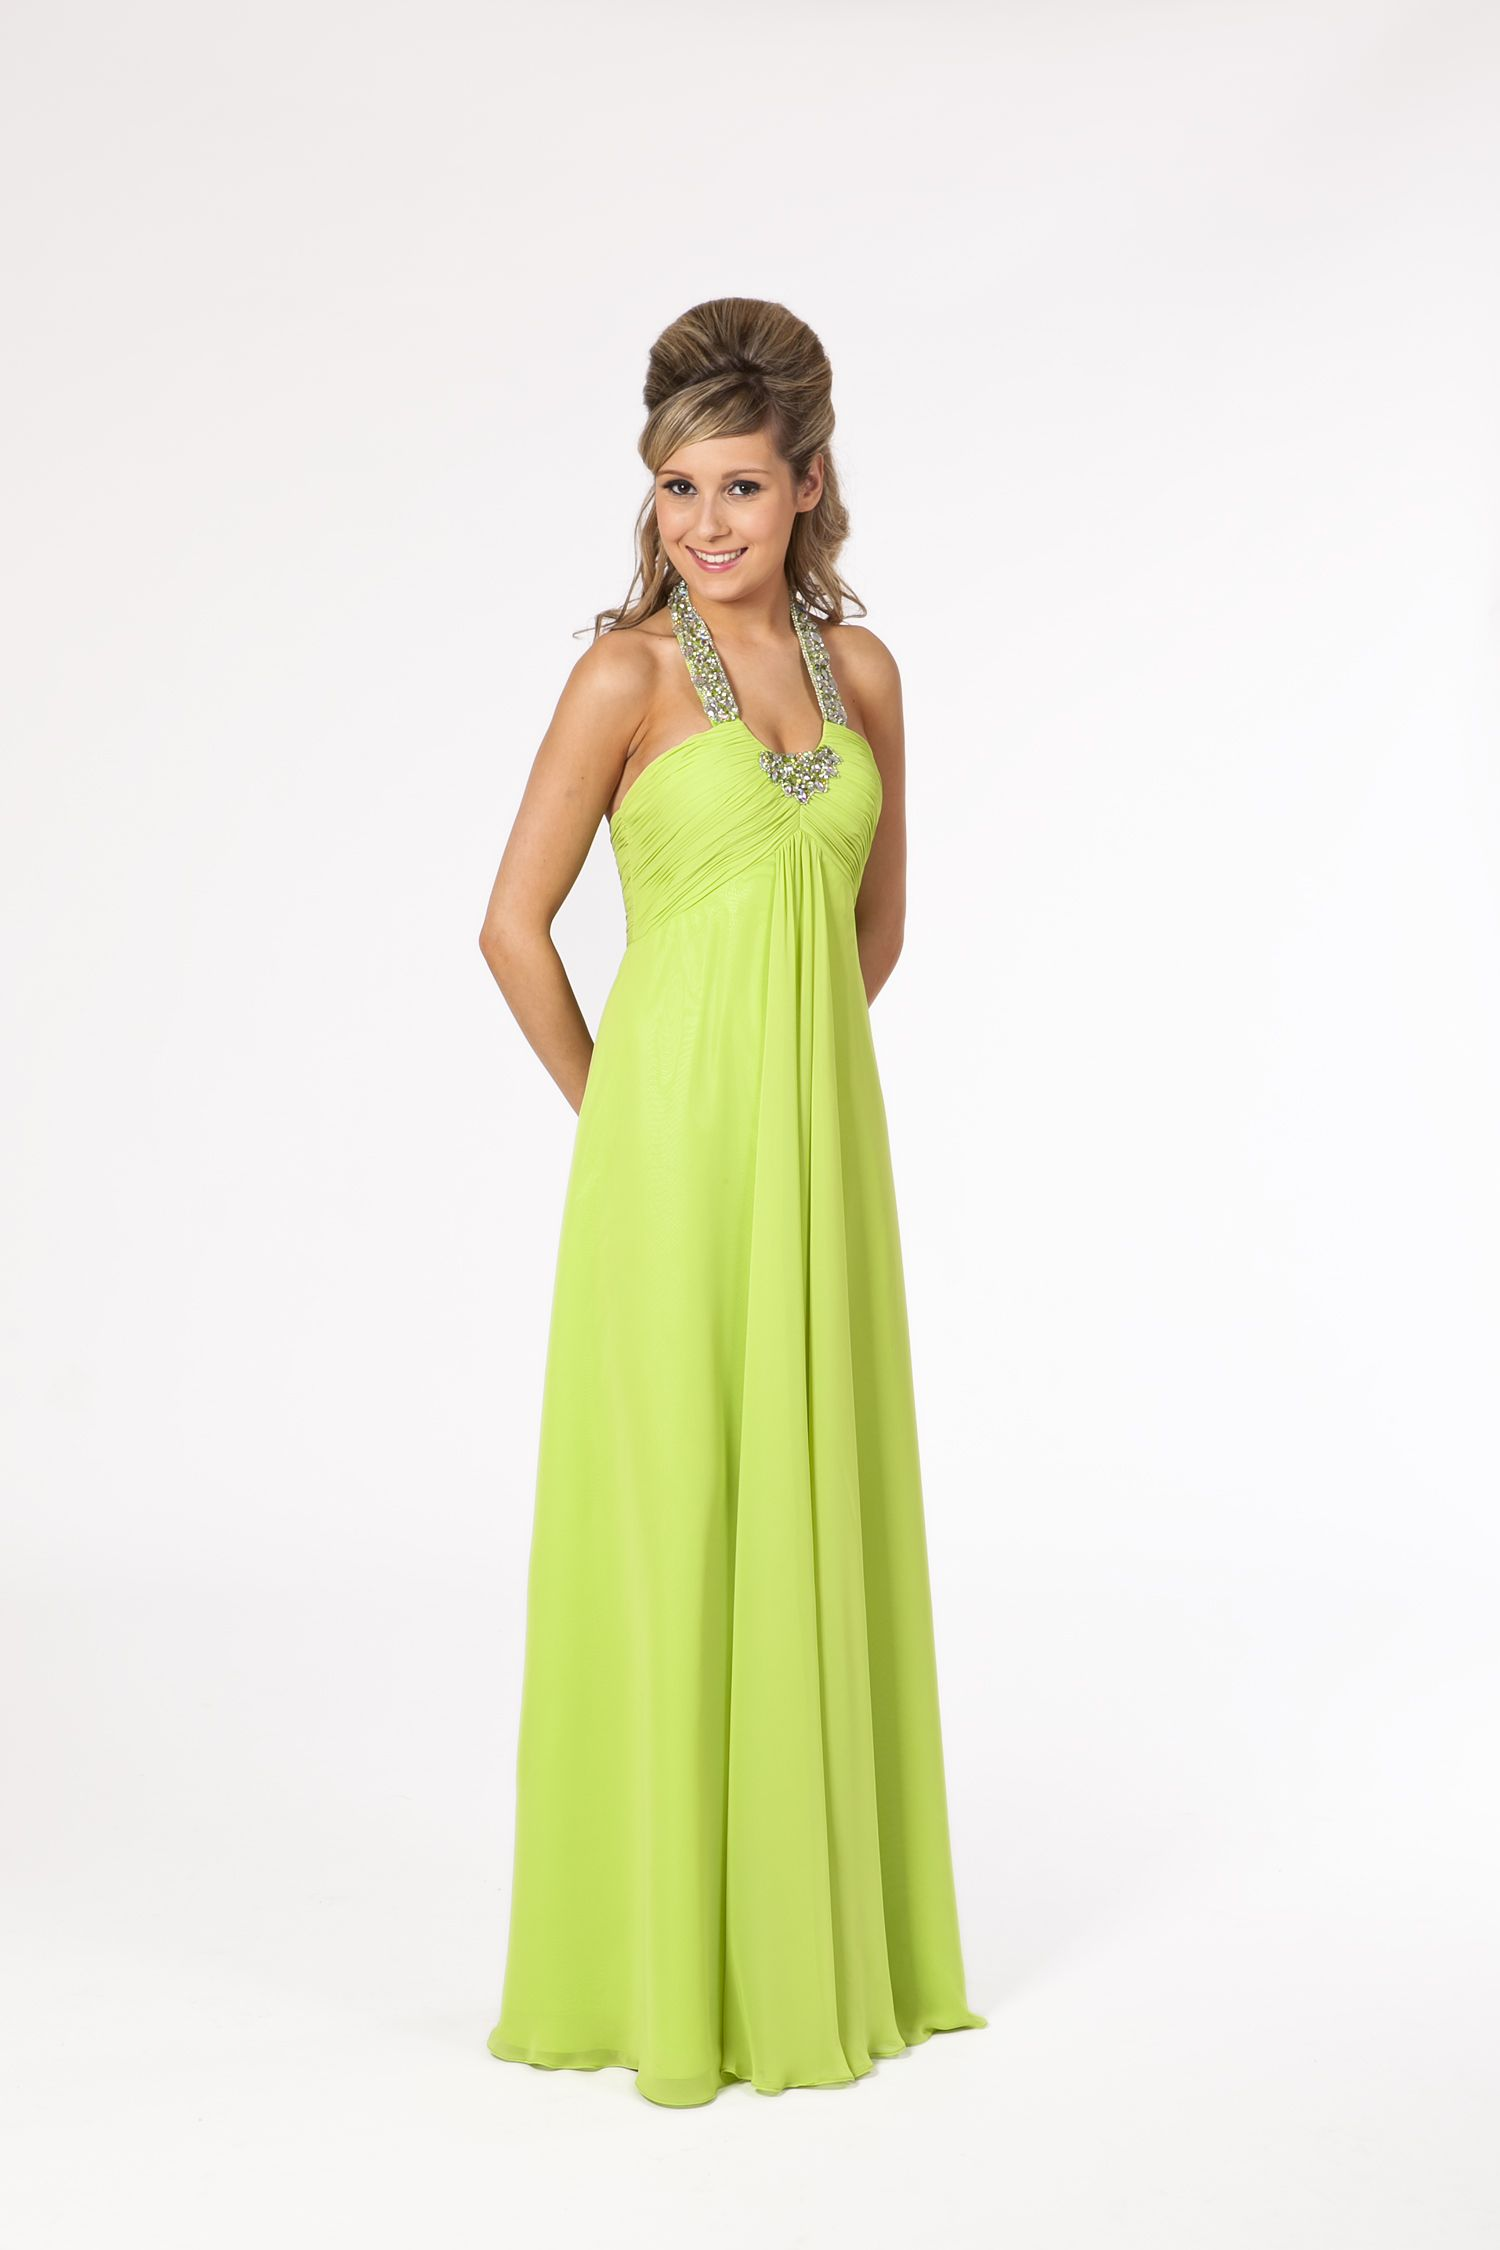 Pin by lilly lou on traditional prom dresses at lillylou